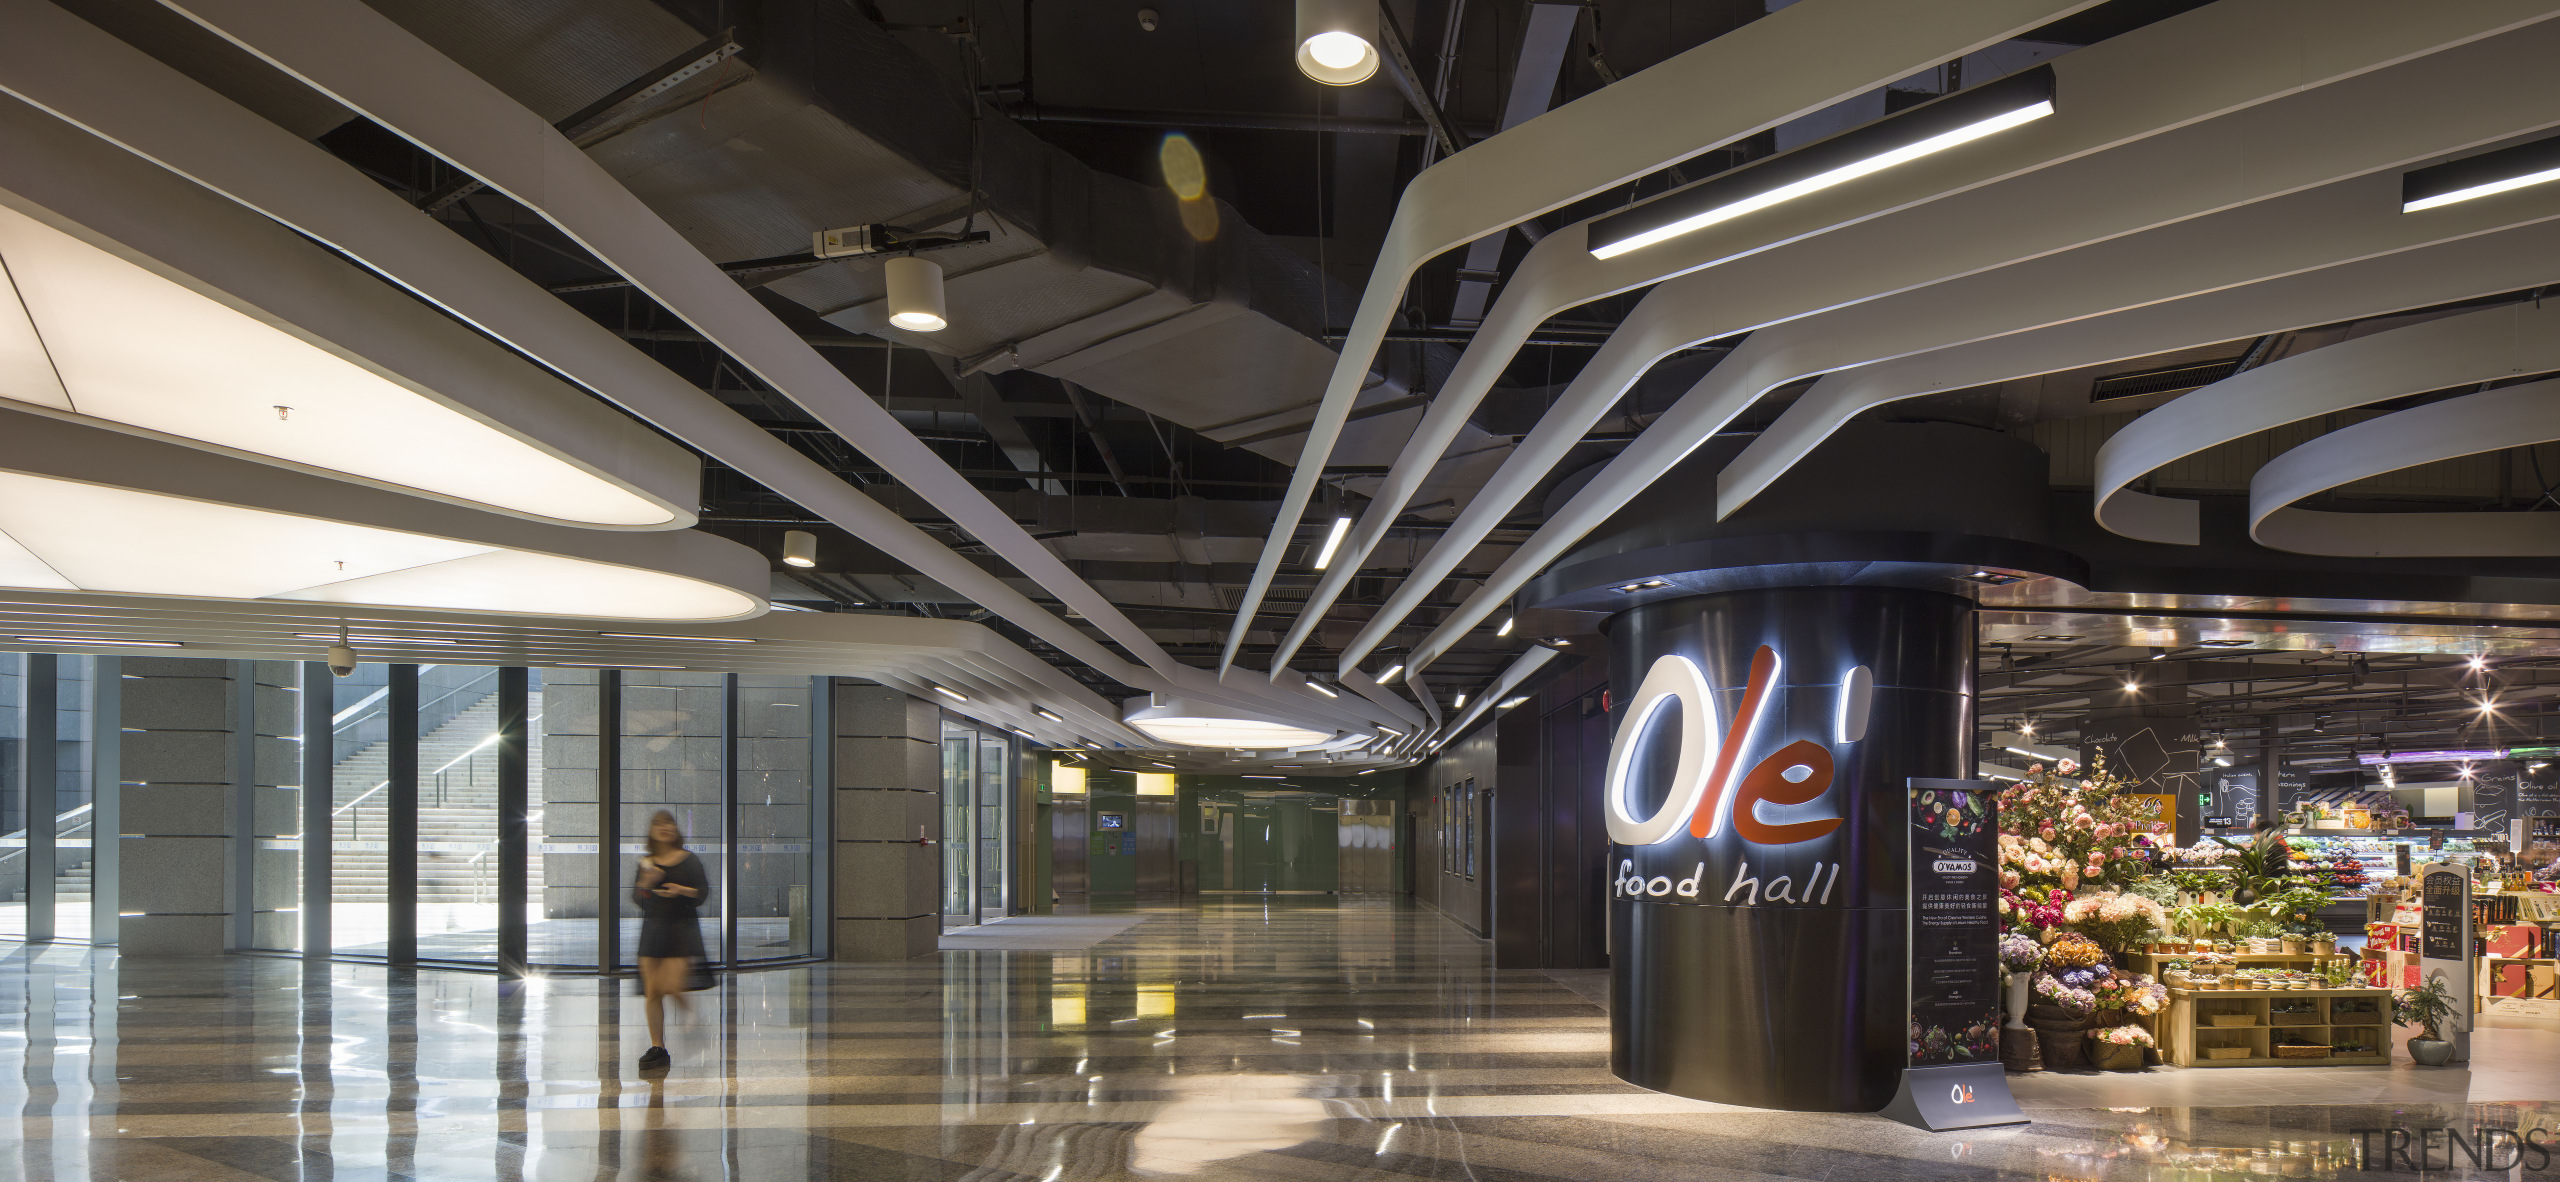 One of the added attractions at Shekou Gateway airport terminal, building, ceiling, lobby, metropolitan area, retail, shopping mall, black, gray